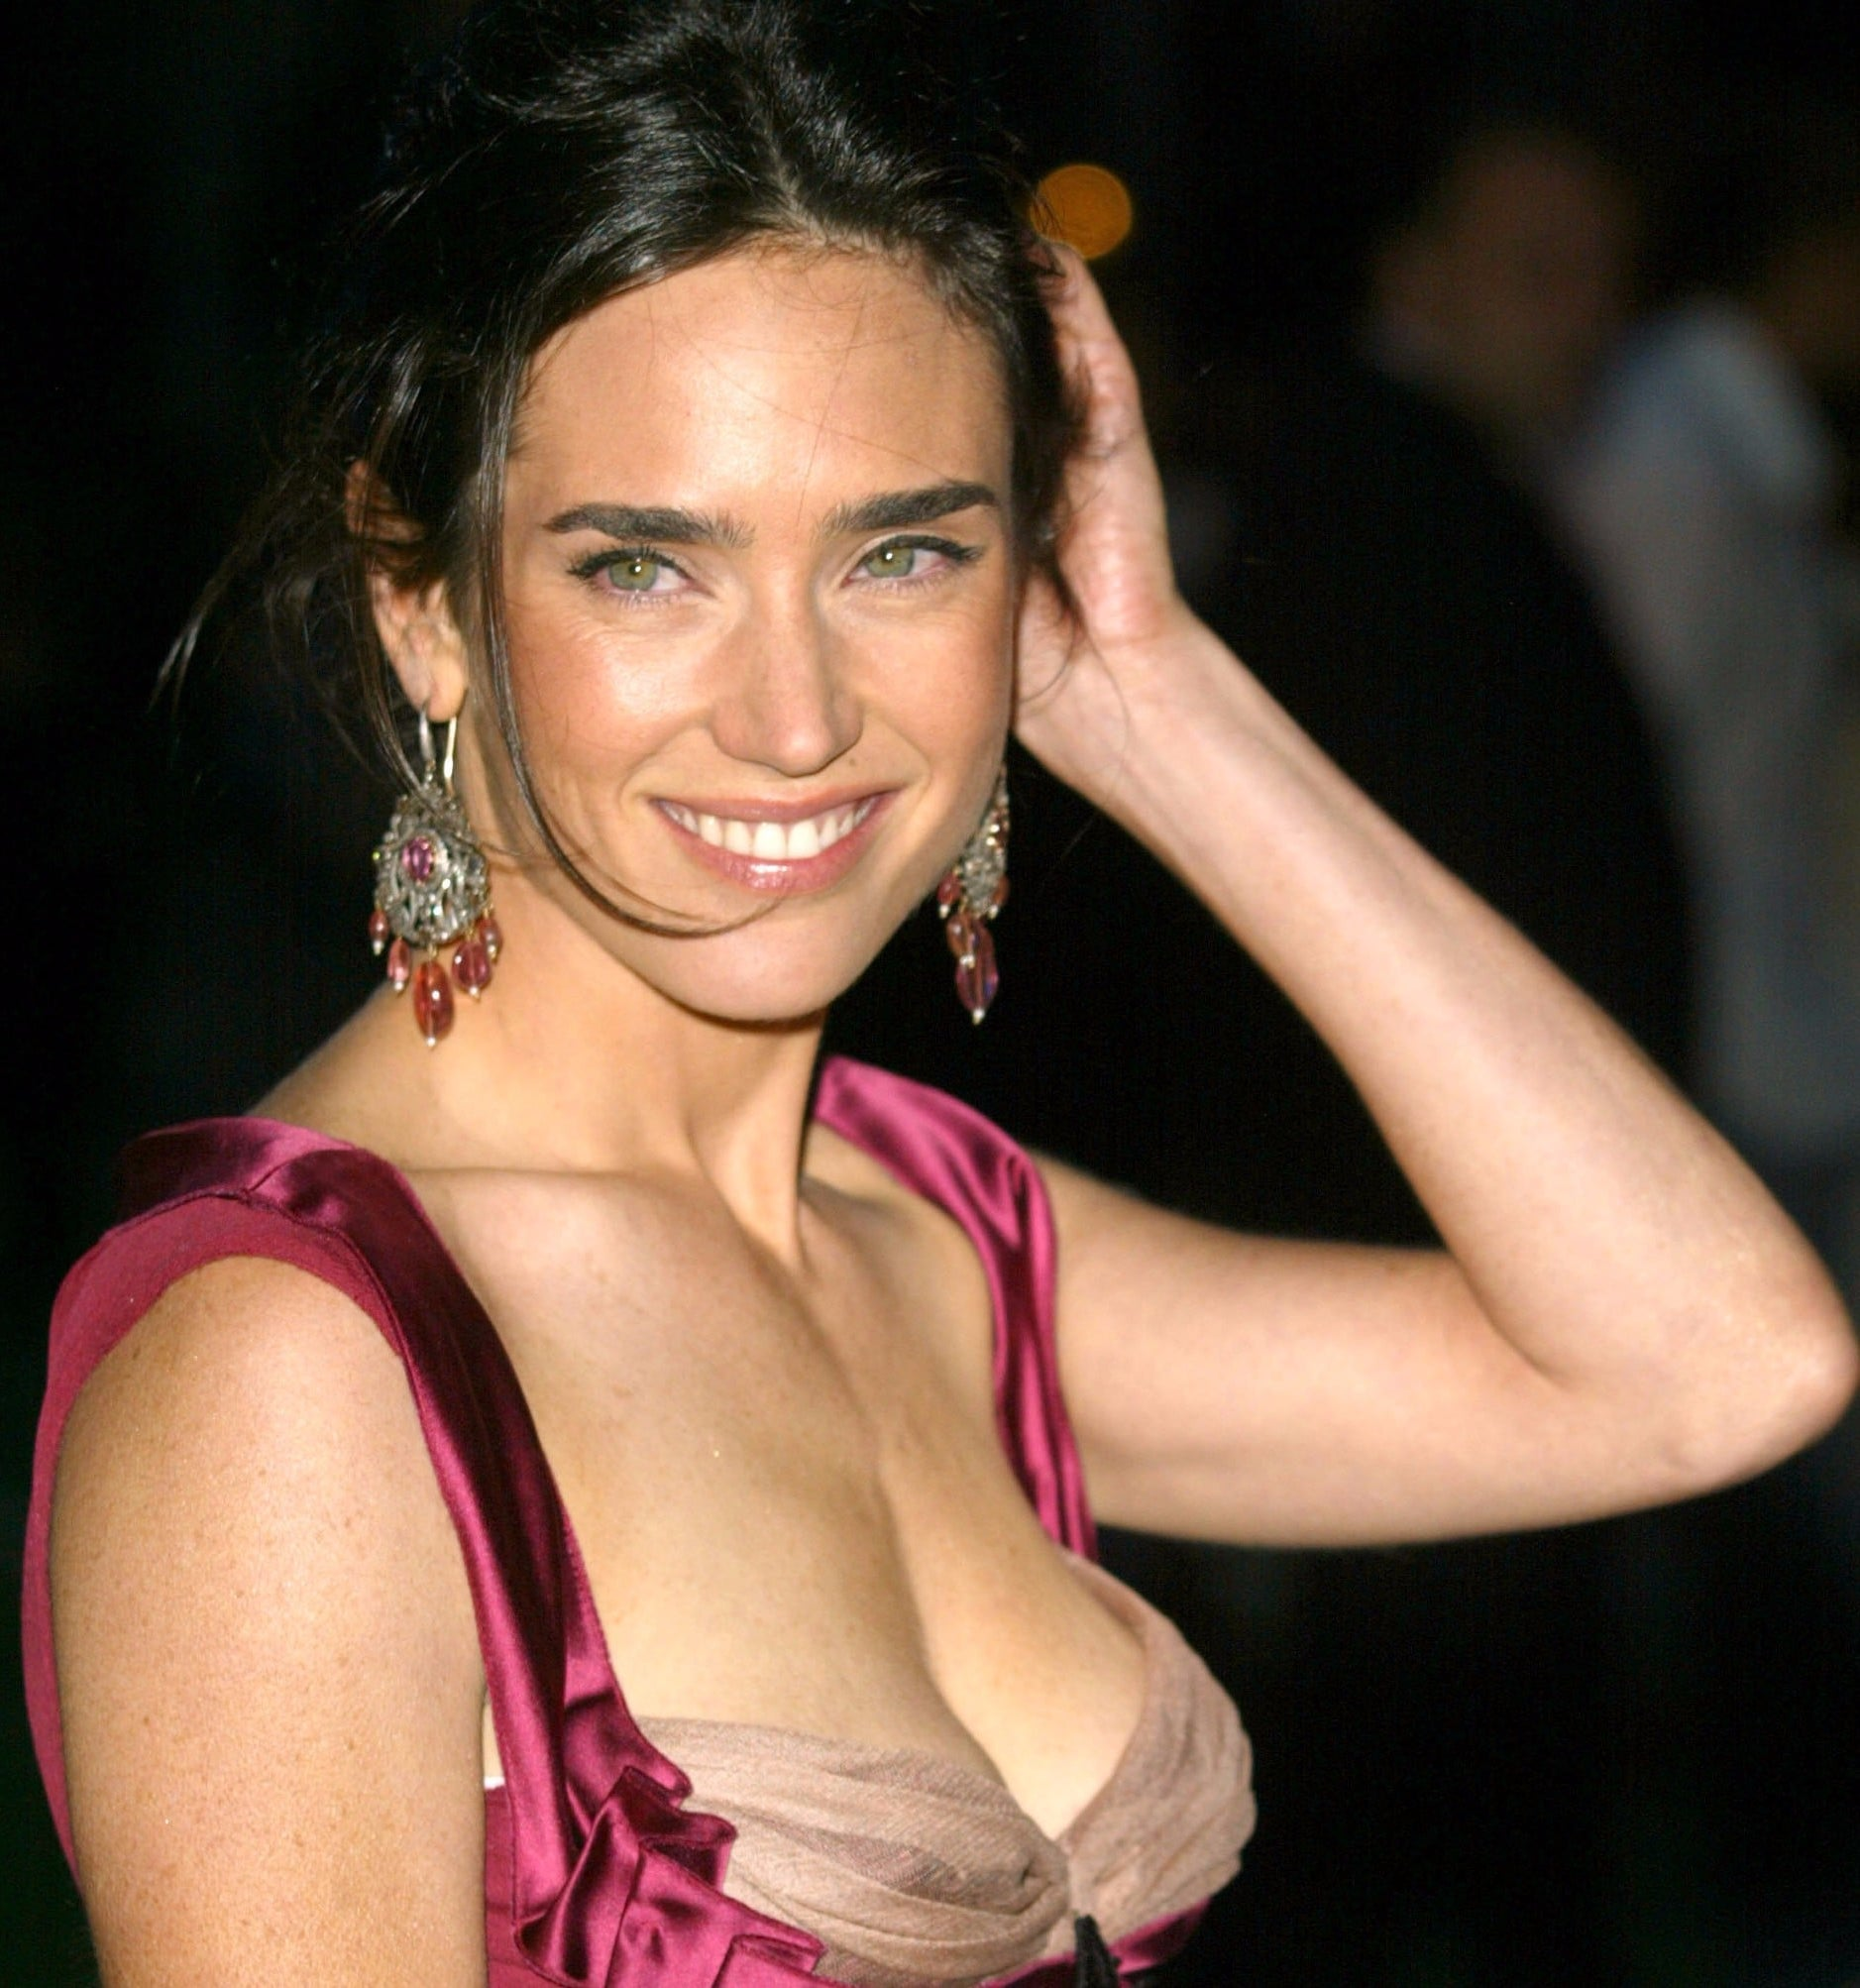 JENNIFER CONNELLY E VIRGINA MADSEN, DUE ATTRICI HOT